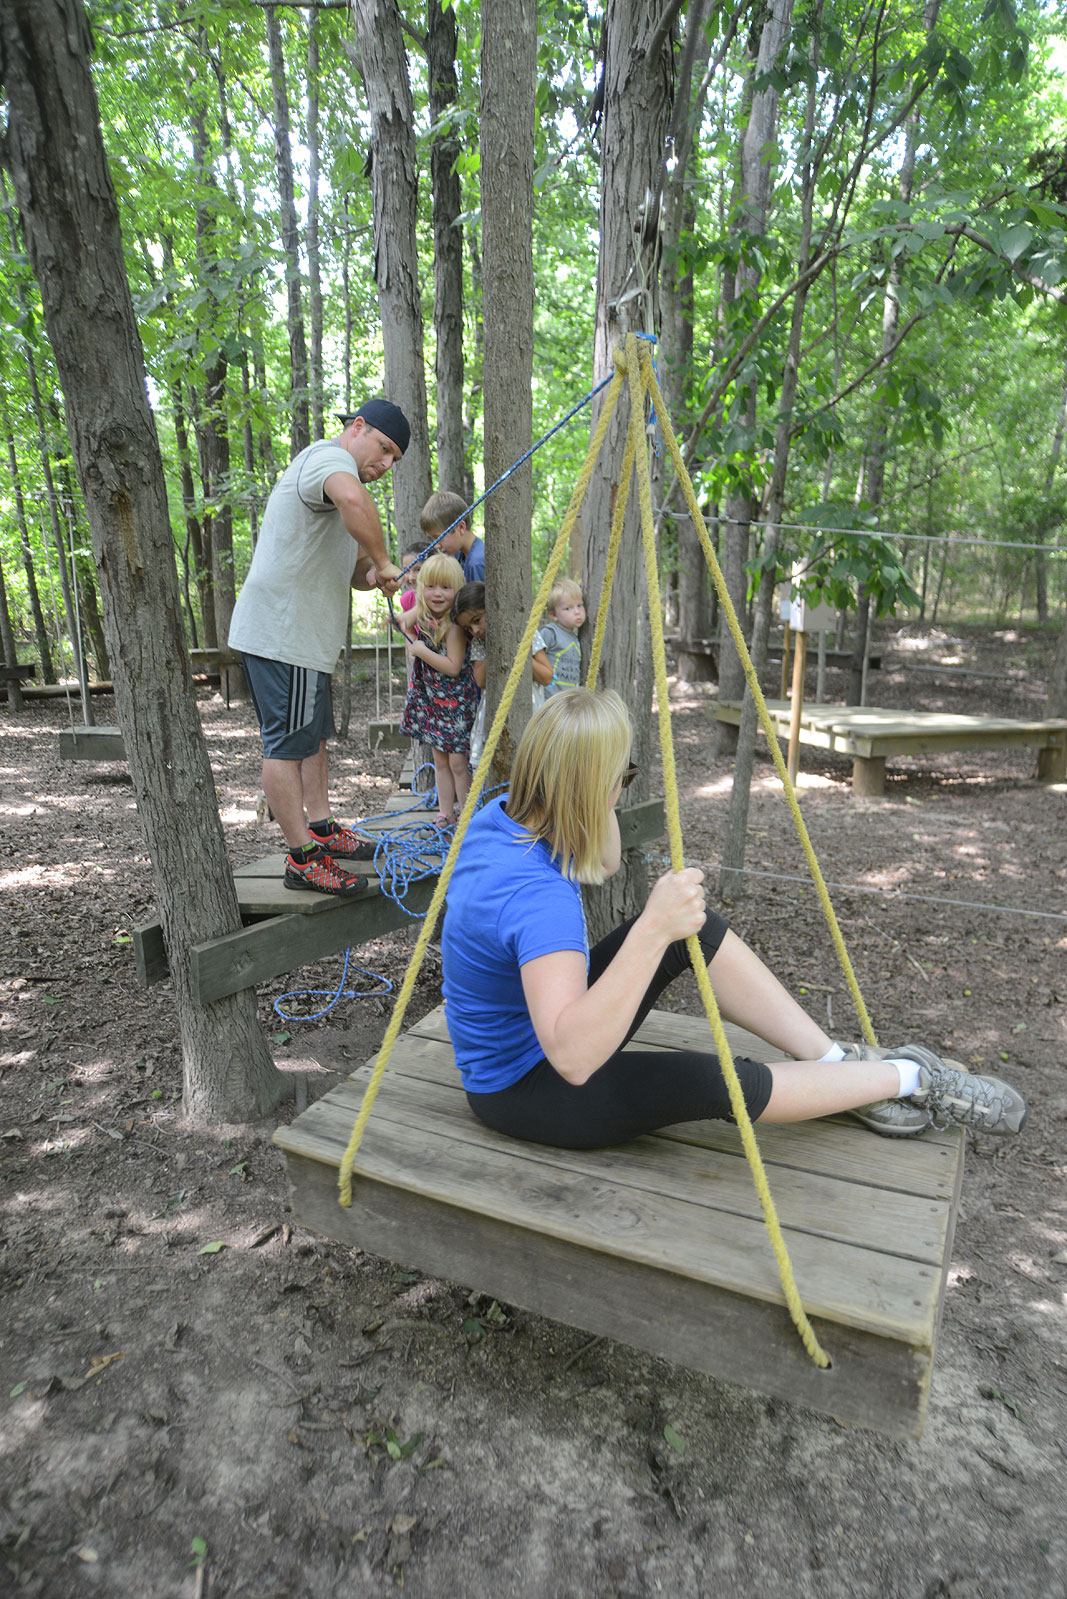 Valentine Family Outdoor Adventure and Fun at Xtreeme Challenge in Charlotte North Carolina